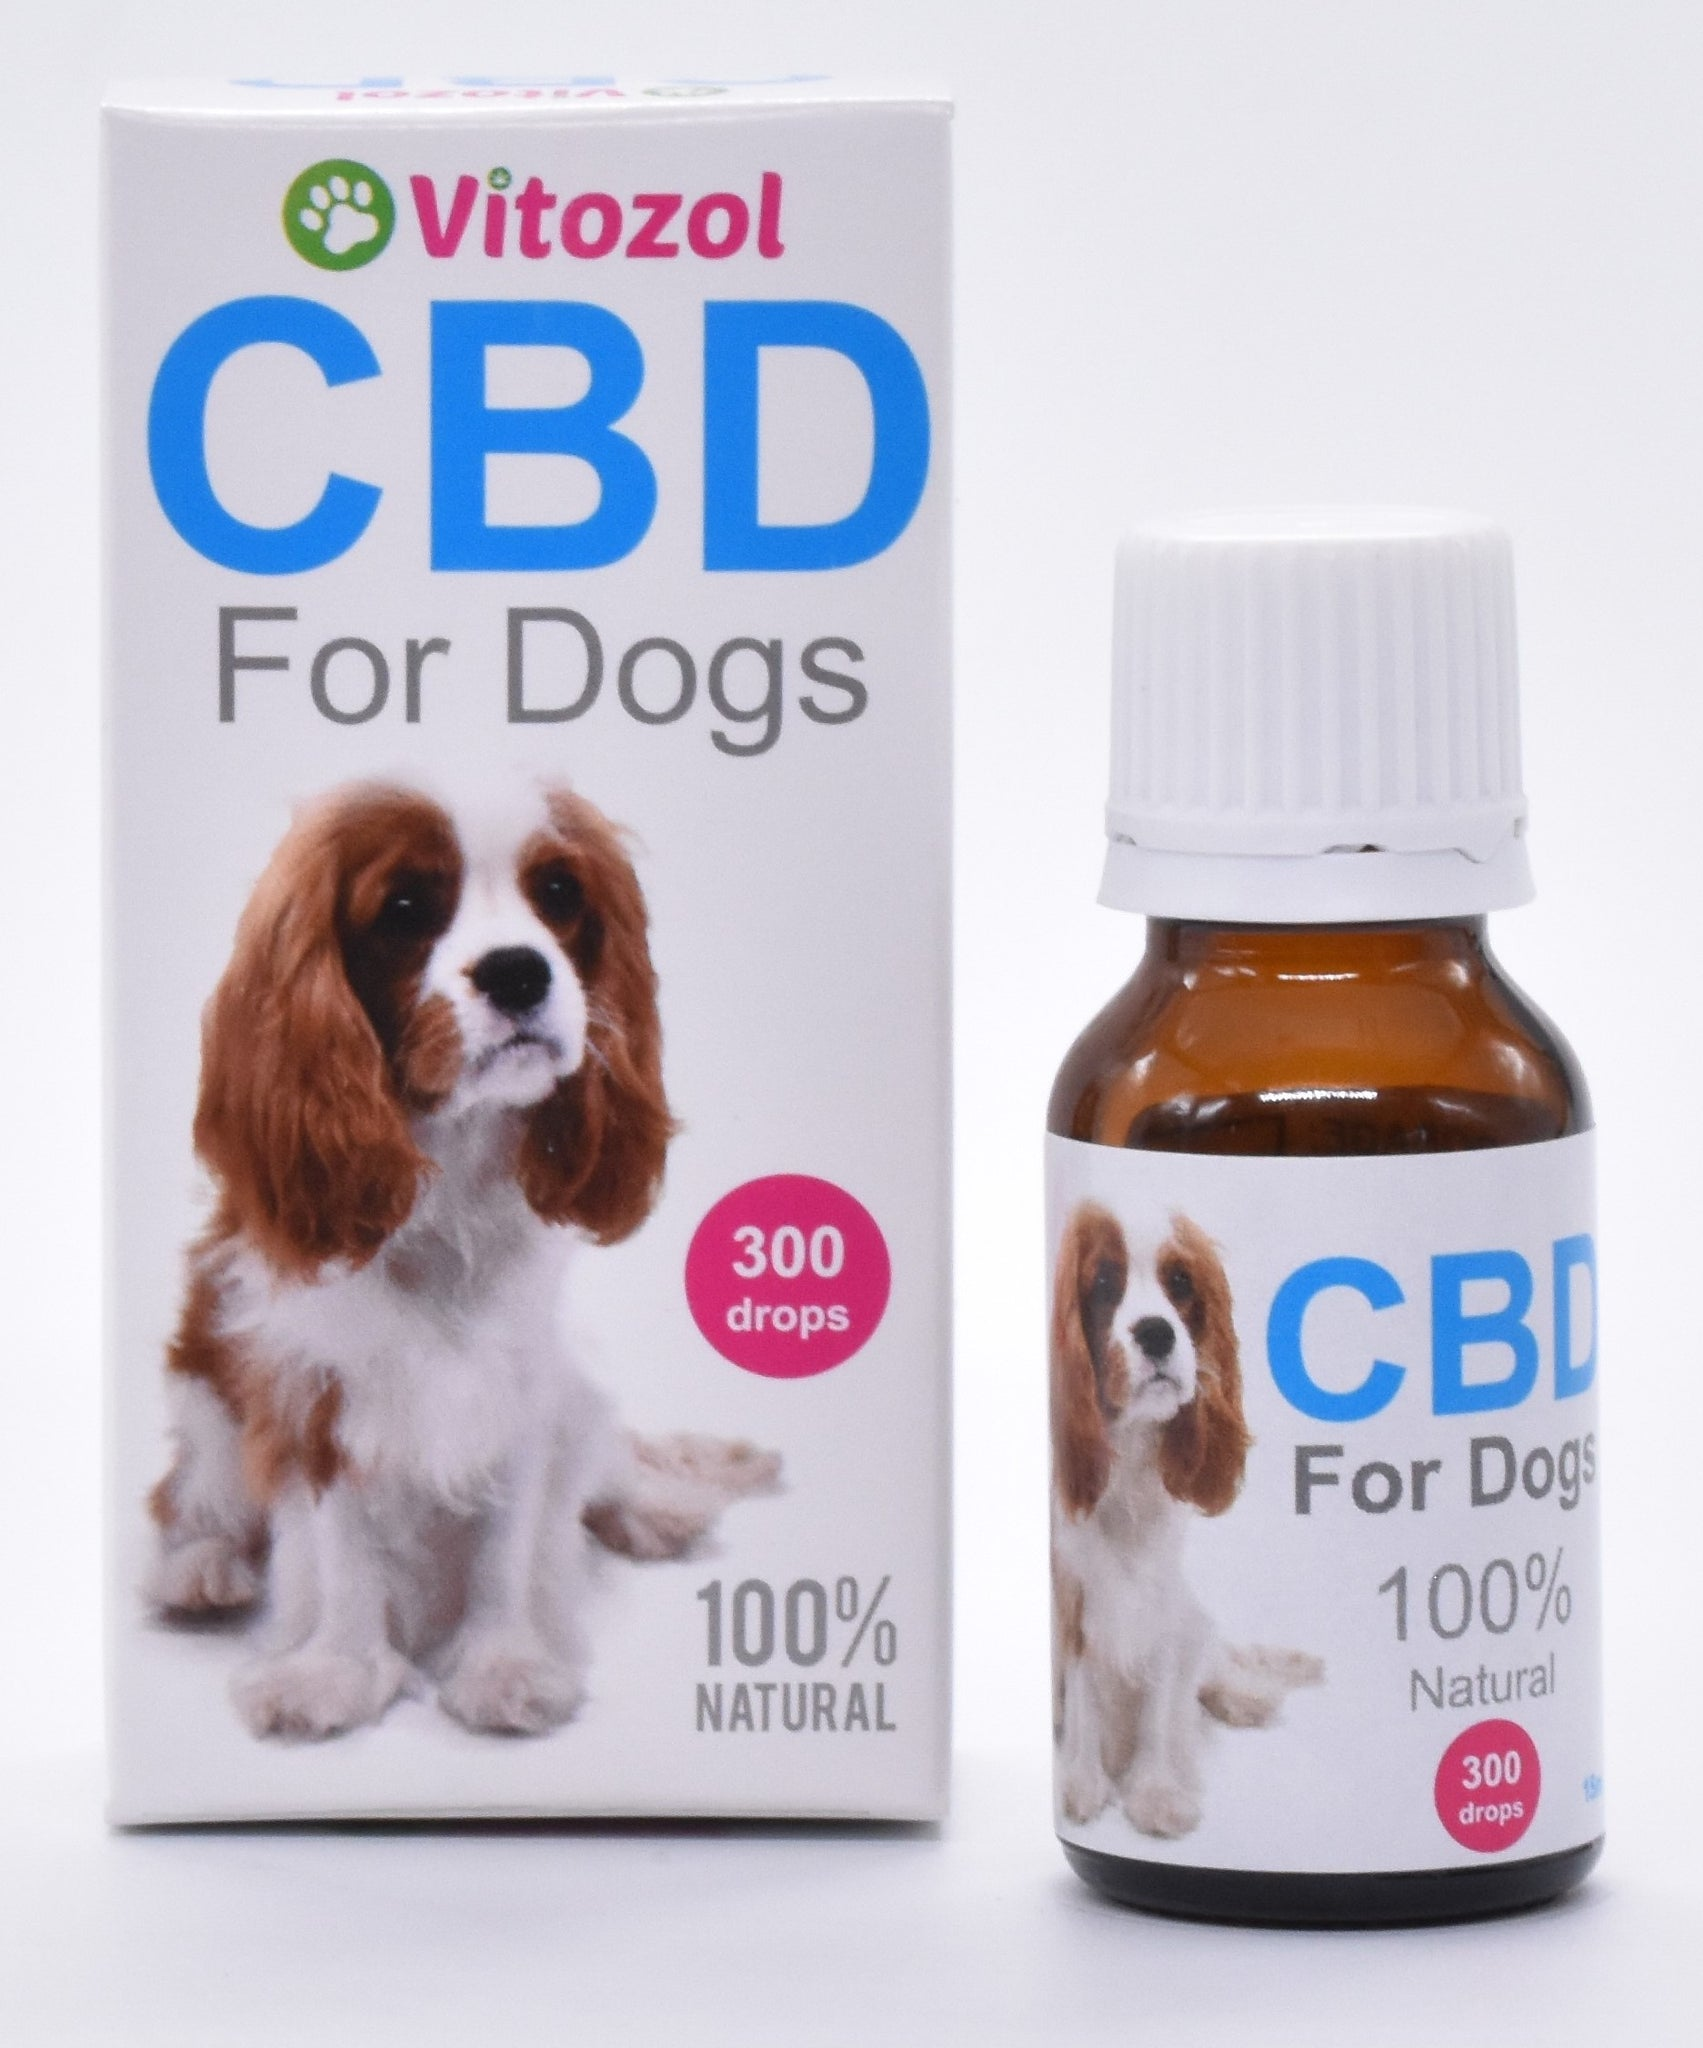 Vitozol CBD Oil for Dogs - Woofworths Premium Online Pet Supplies